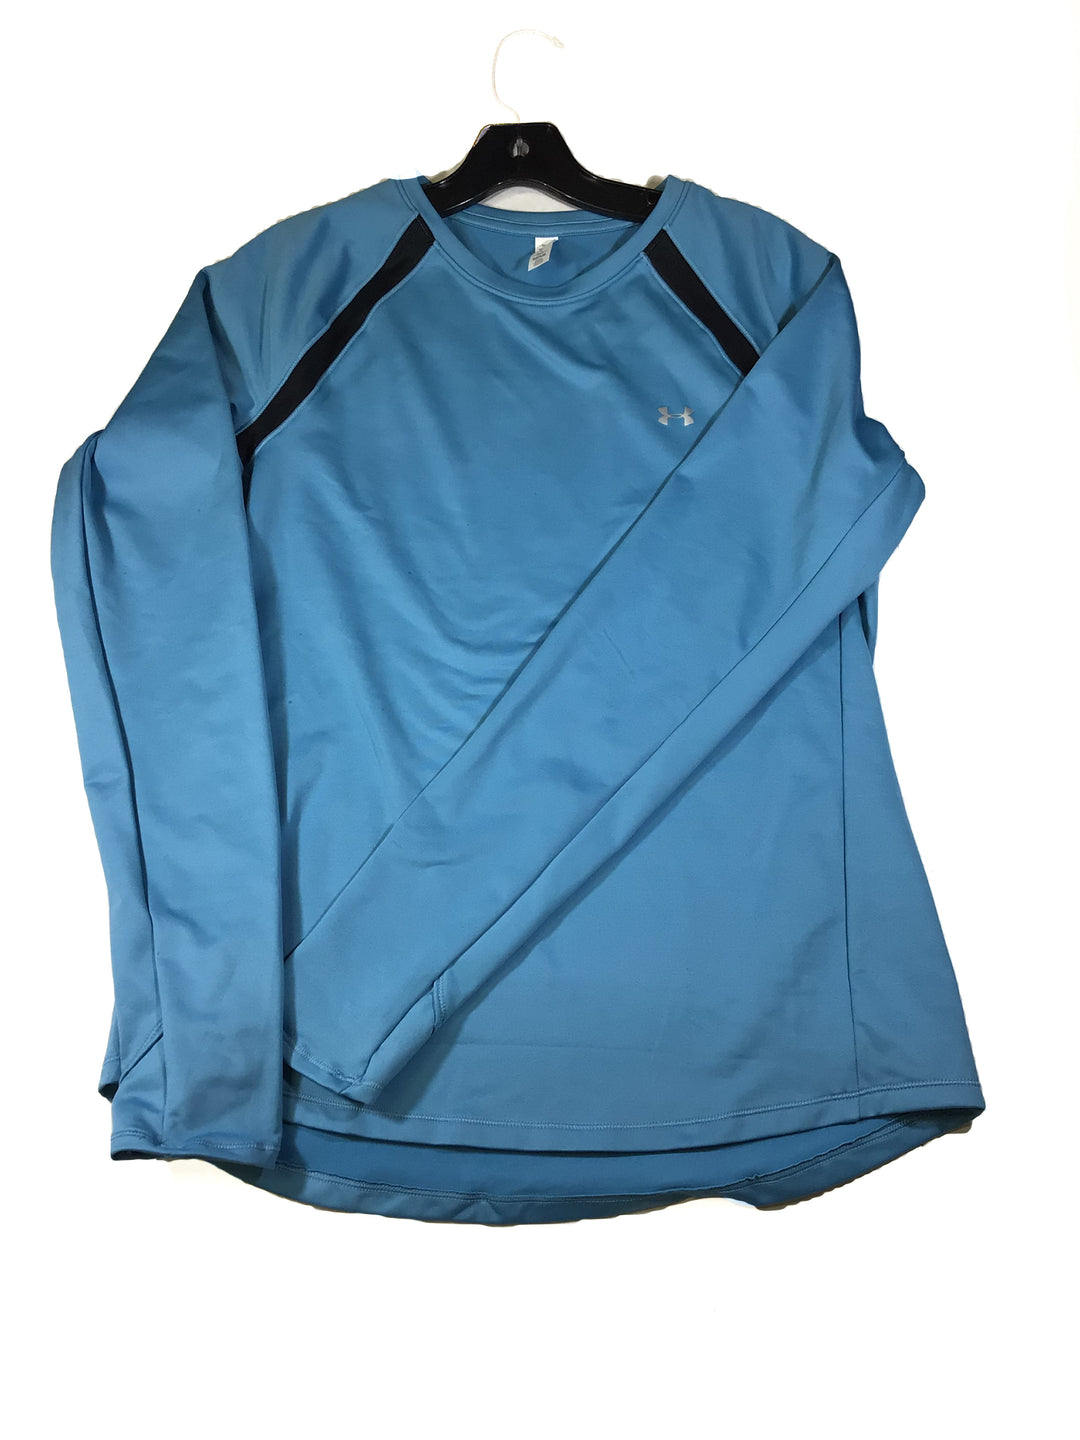 Primary Photo - BRAND: UNDER ARMOUR <BR>STYLE: ATHLETIC TOP <BR>COLOR: BLUE <BR>SIZE: L <BR>OTHER INFO: NEW! <BR>SKU: 213-21394-41607